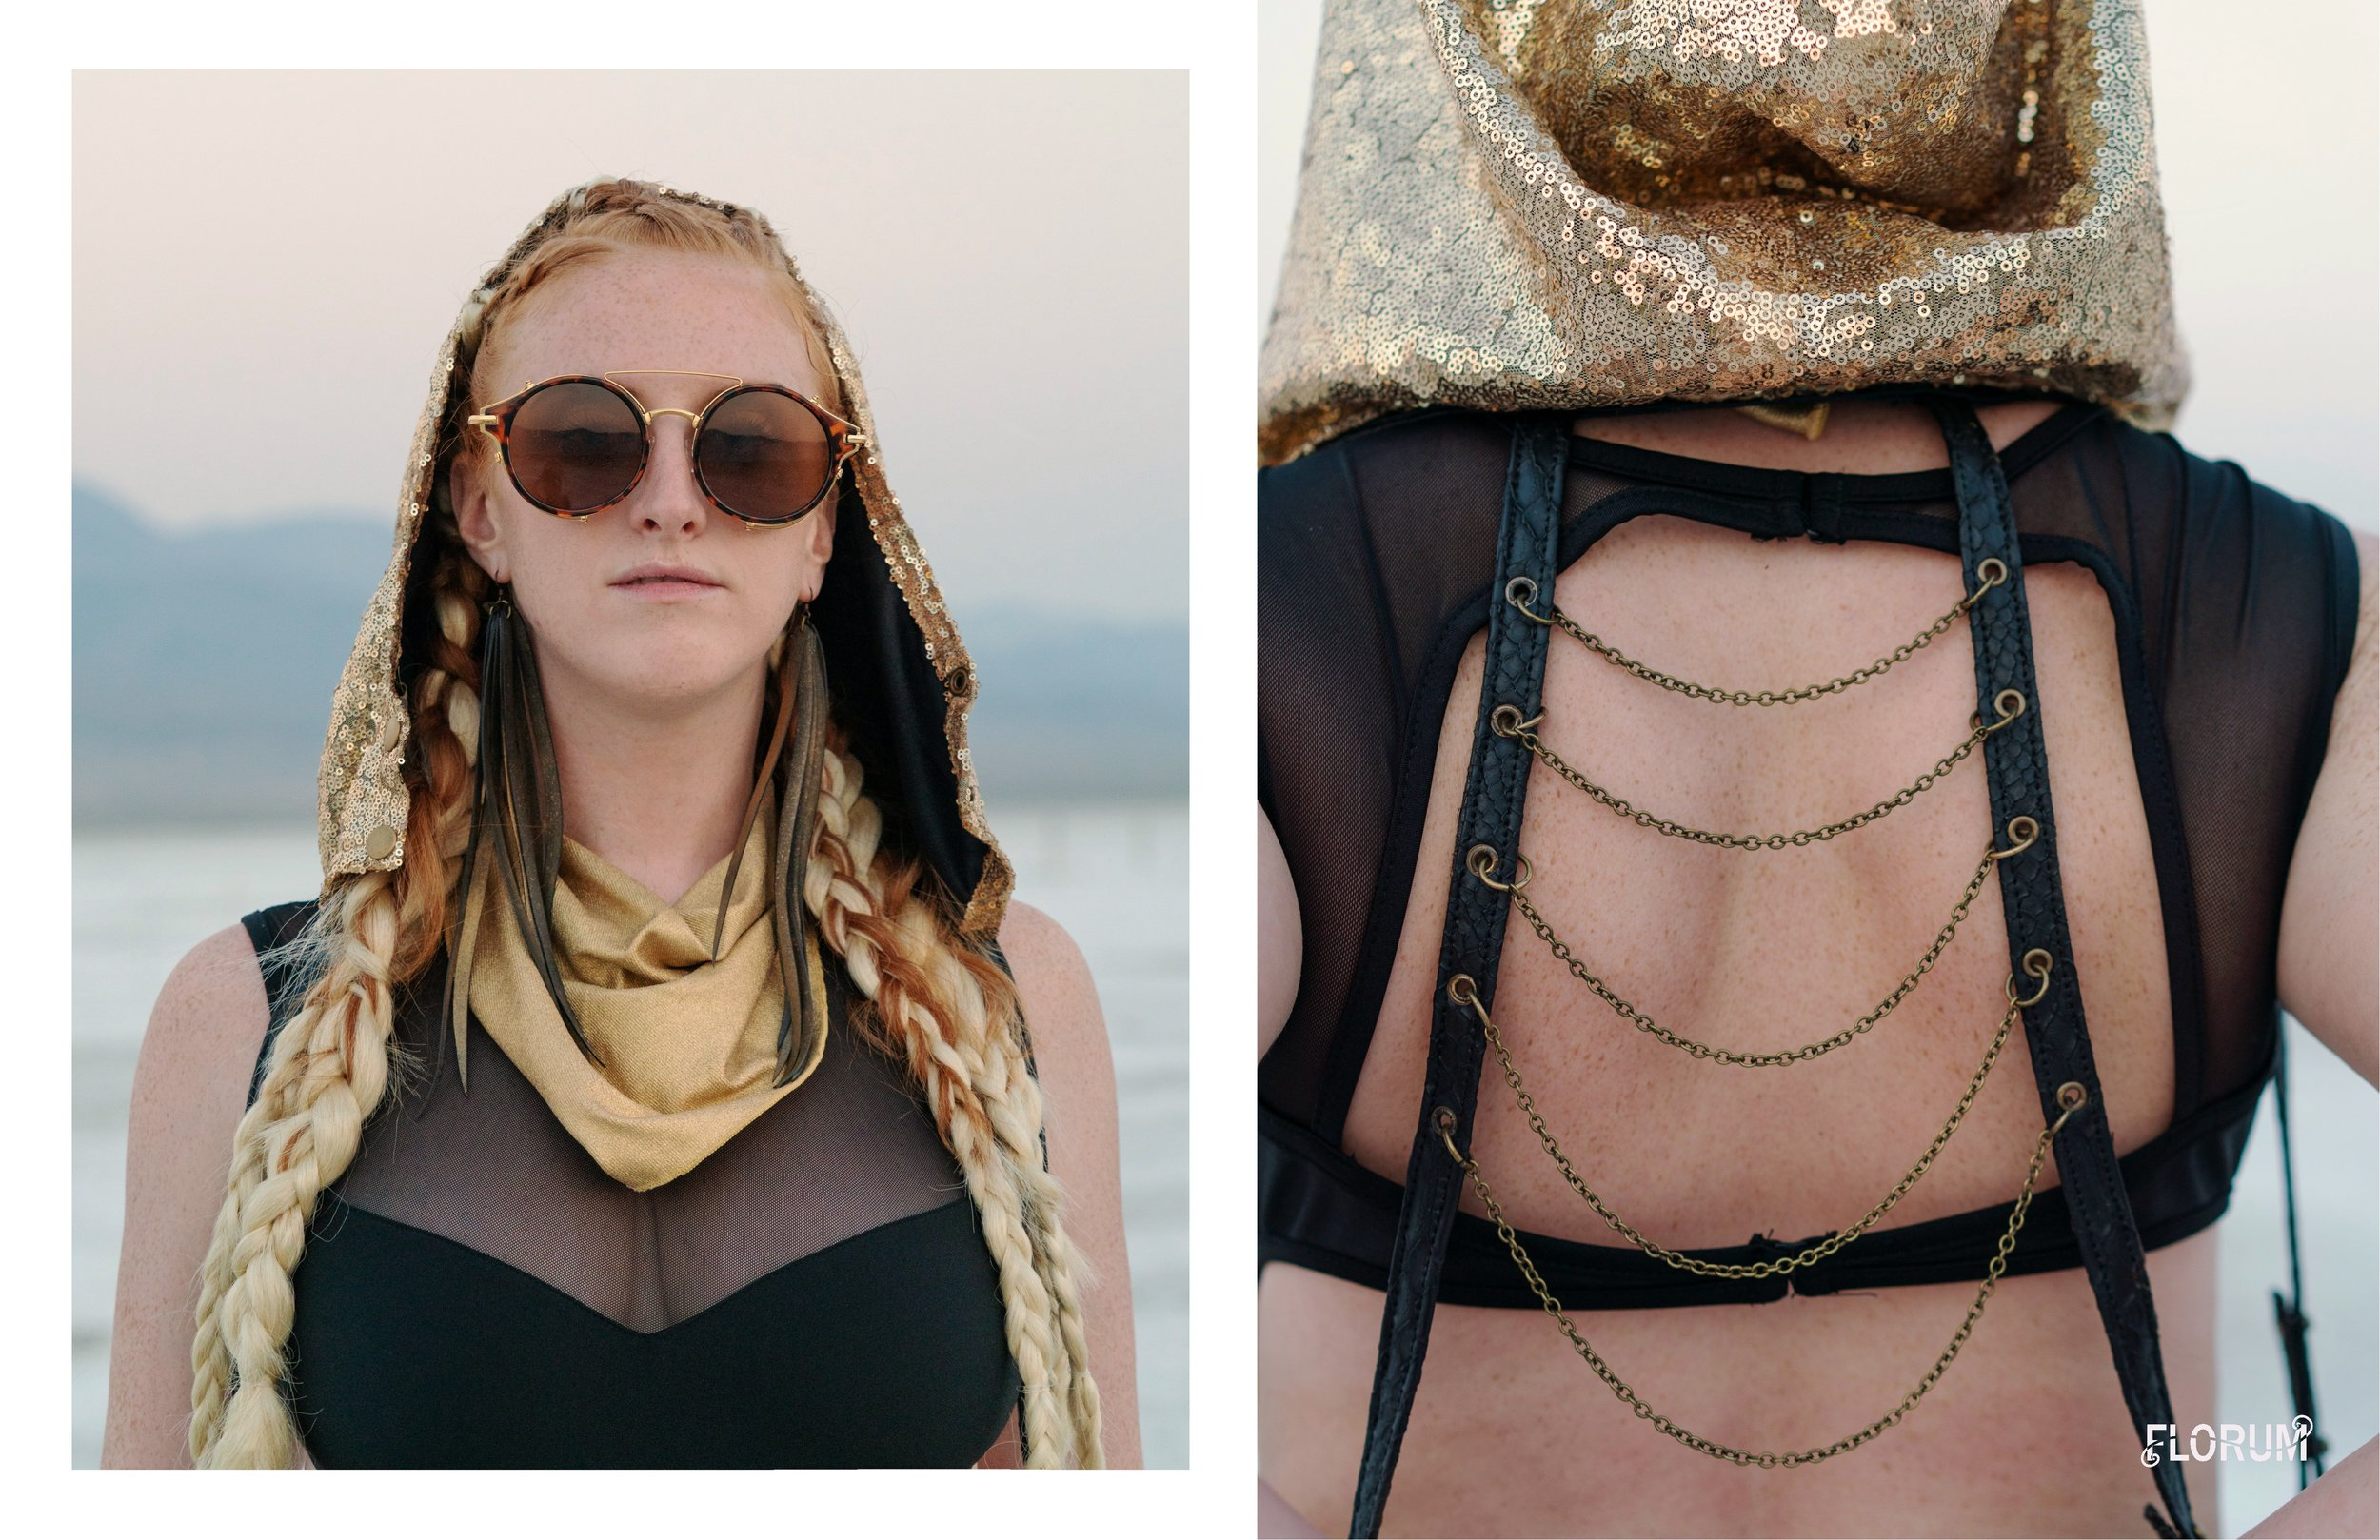 made in usa    black strappy cutout bodysuit     I HEART RAVES  $35  shop here      repurposed bicycle inner tubes  vegan feather disco earrings  BEATRICE HOLIDAY  $42  shop here       designed in brooklyn, made in bali sequin hood and leather holster   ORNATE REVERIE  $180  shop here